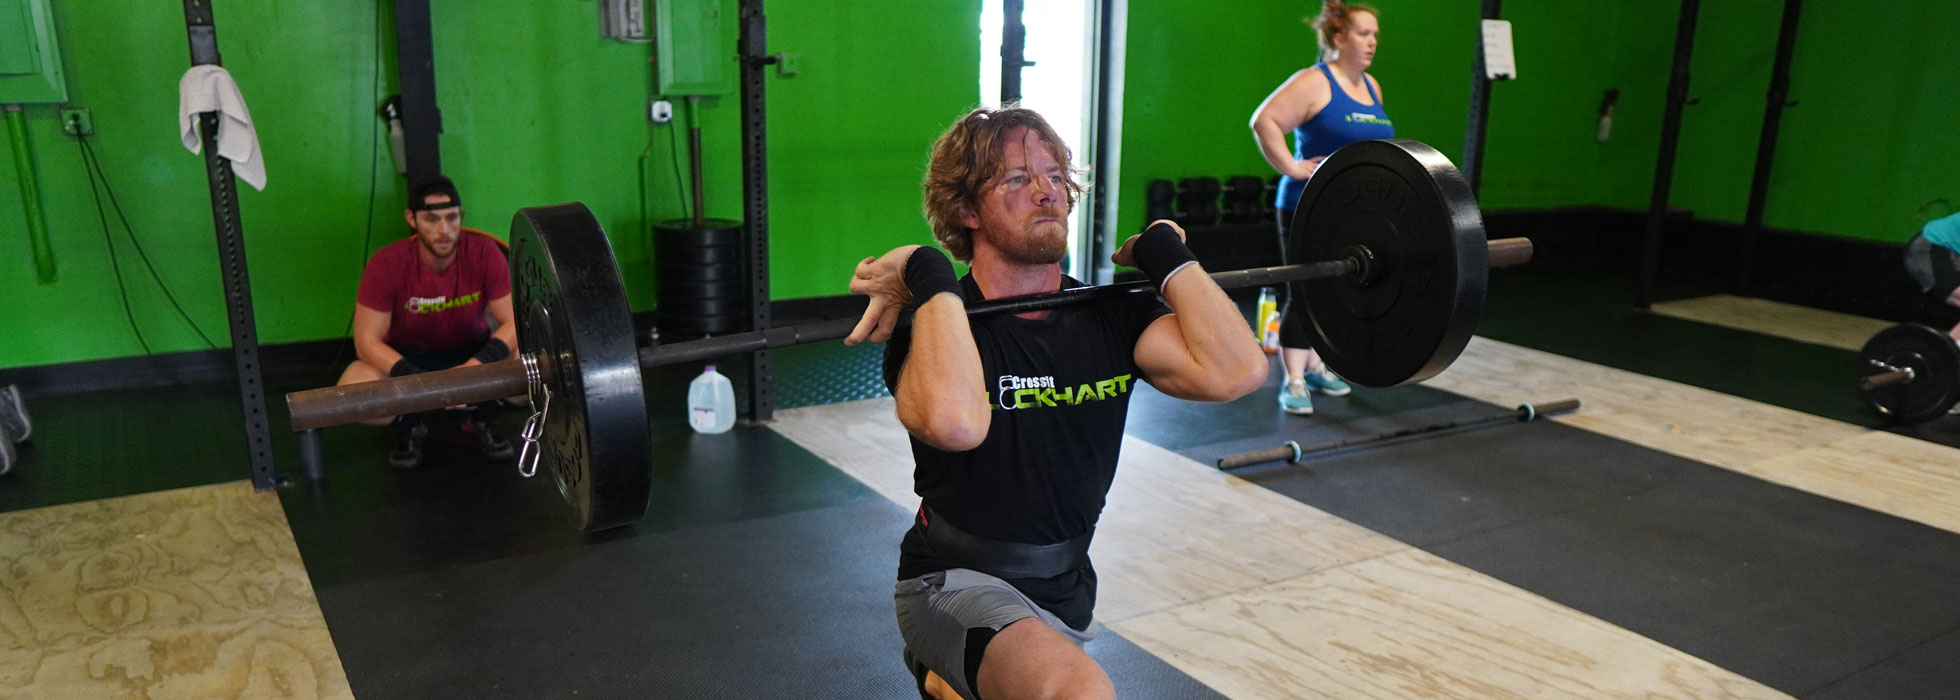 A Gym In Orlando That Can Help With Weight Loss & Dieting